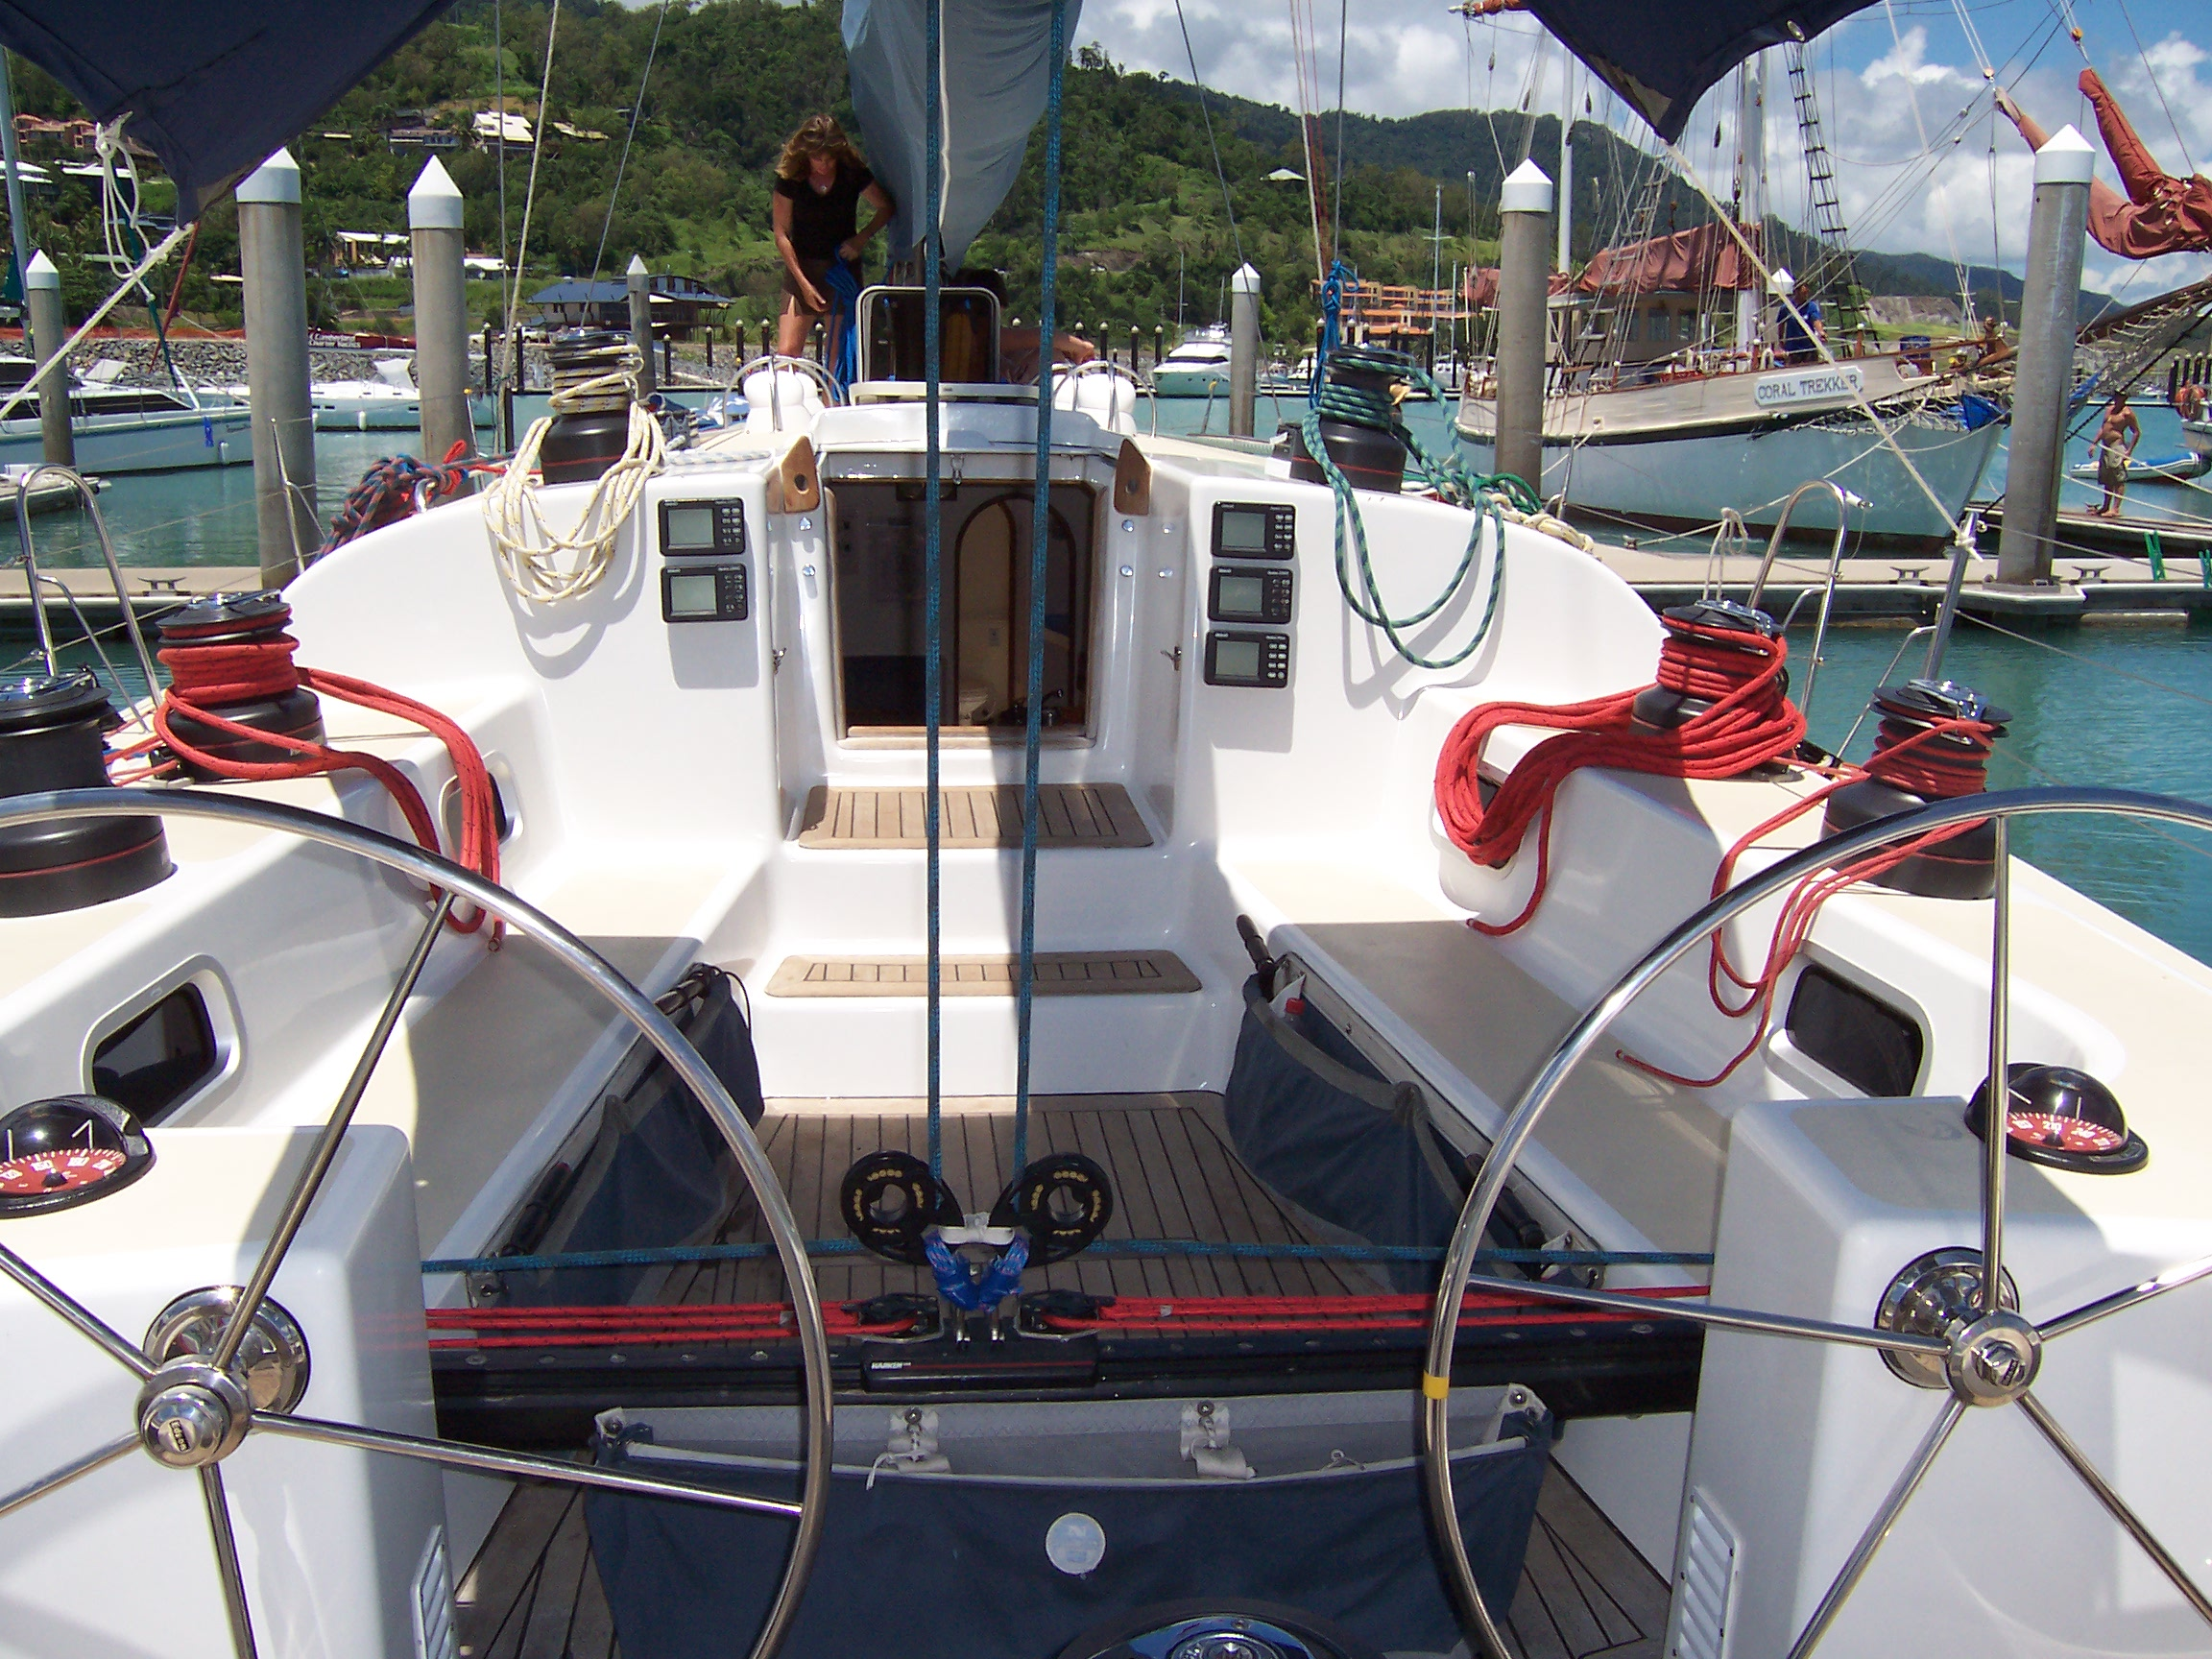 Eureke II 2 days 1 night Overnight Tour - Whitsunday Islands - Cockpit